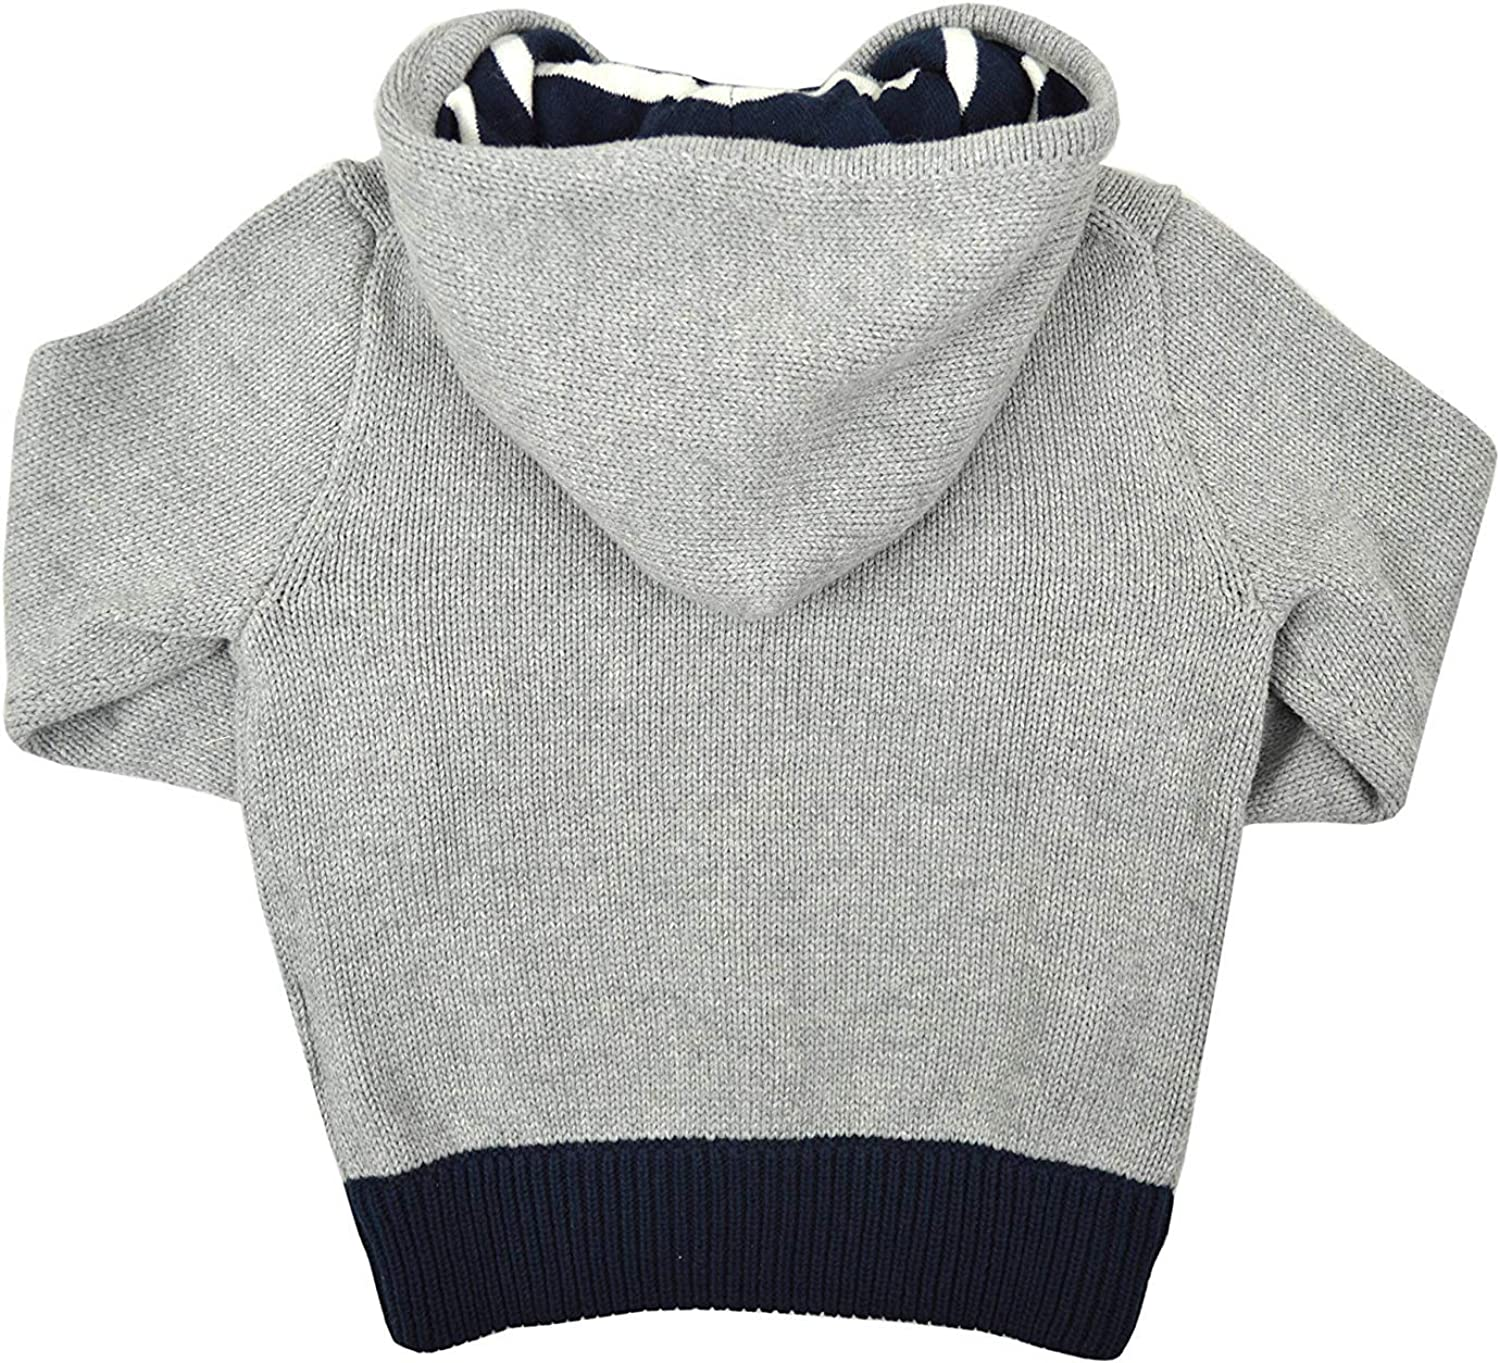 5 Polo Ralph Lauren Toddlers Boys Woven Knit Striped Hood Zip Up Hoodie Sweater Grey Heather